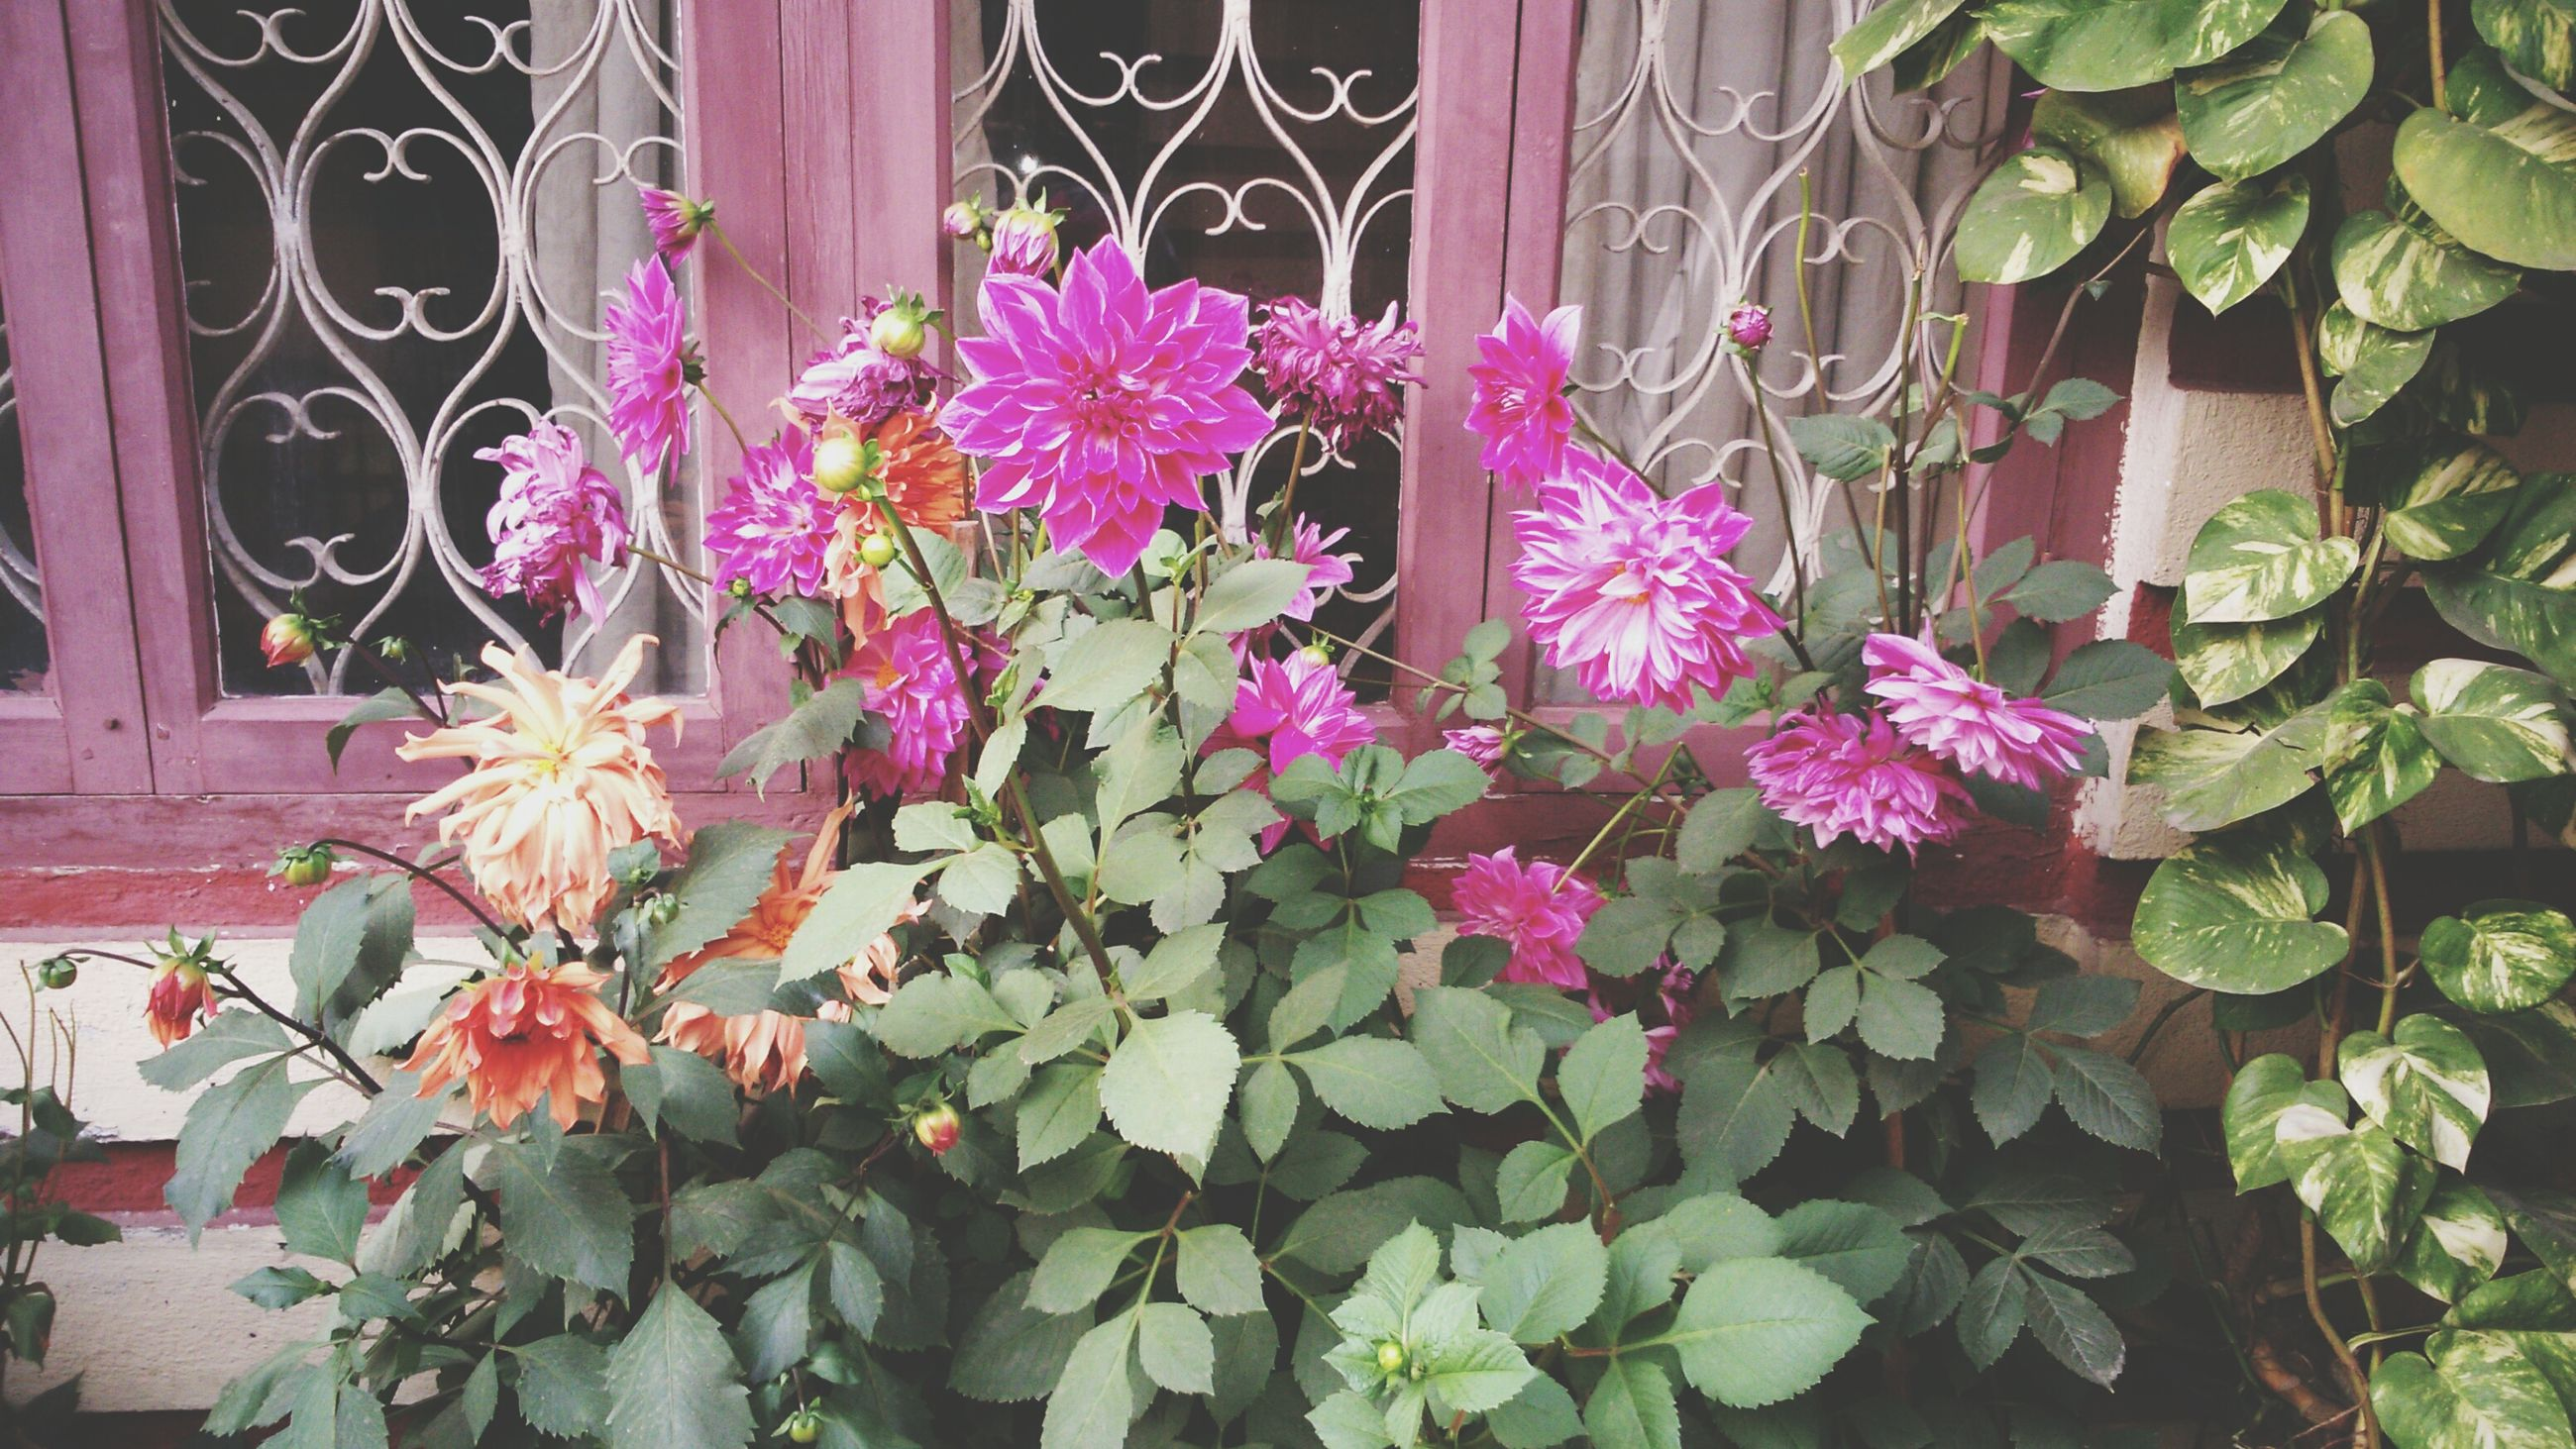 plant, flower, growth, leaf, potted plant, built structure, building exterior, architecture, freshness, house, fence, nature, front or back yard, green color, fragility, pink color, day, outdoors, no people, close-up